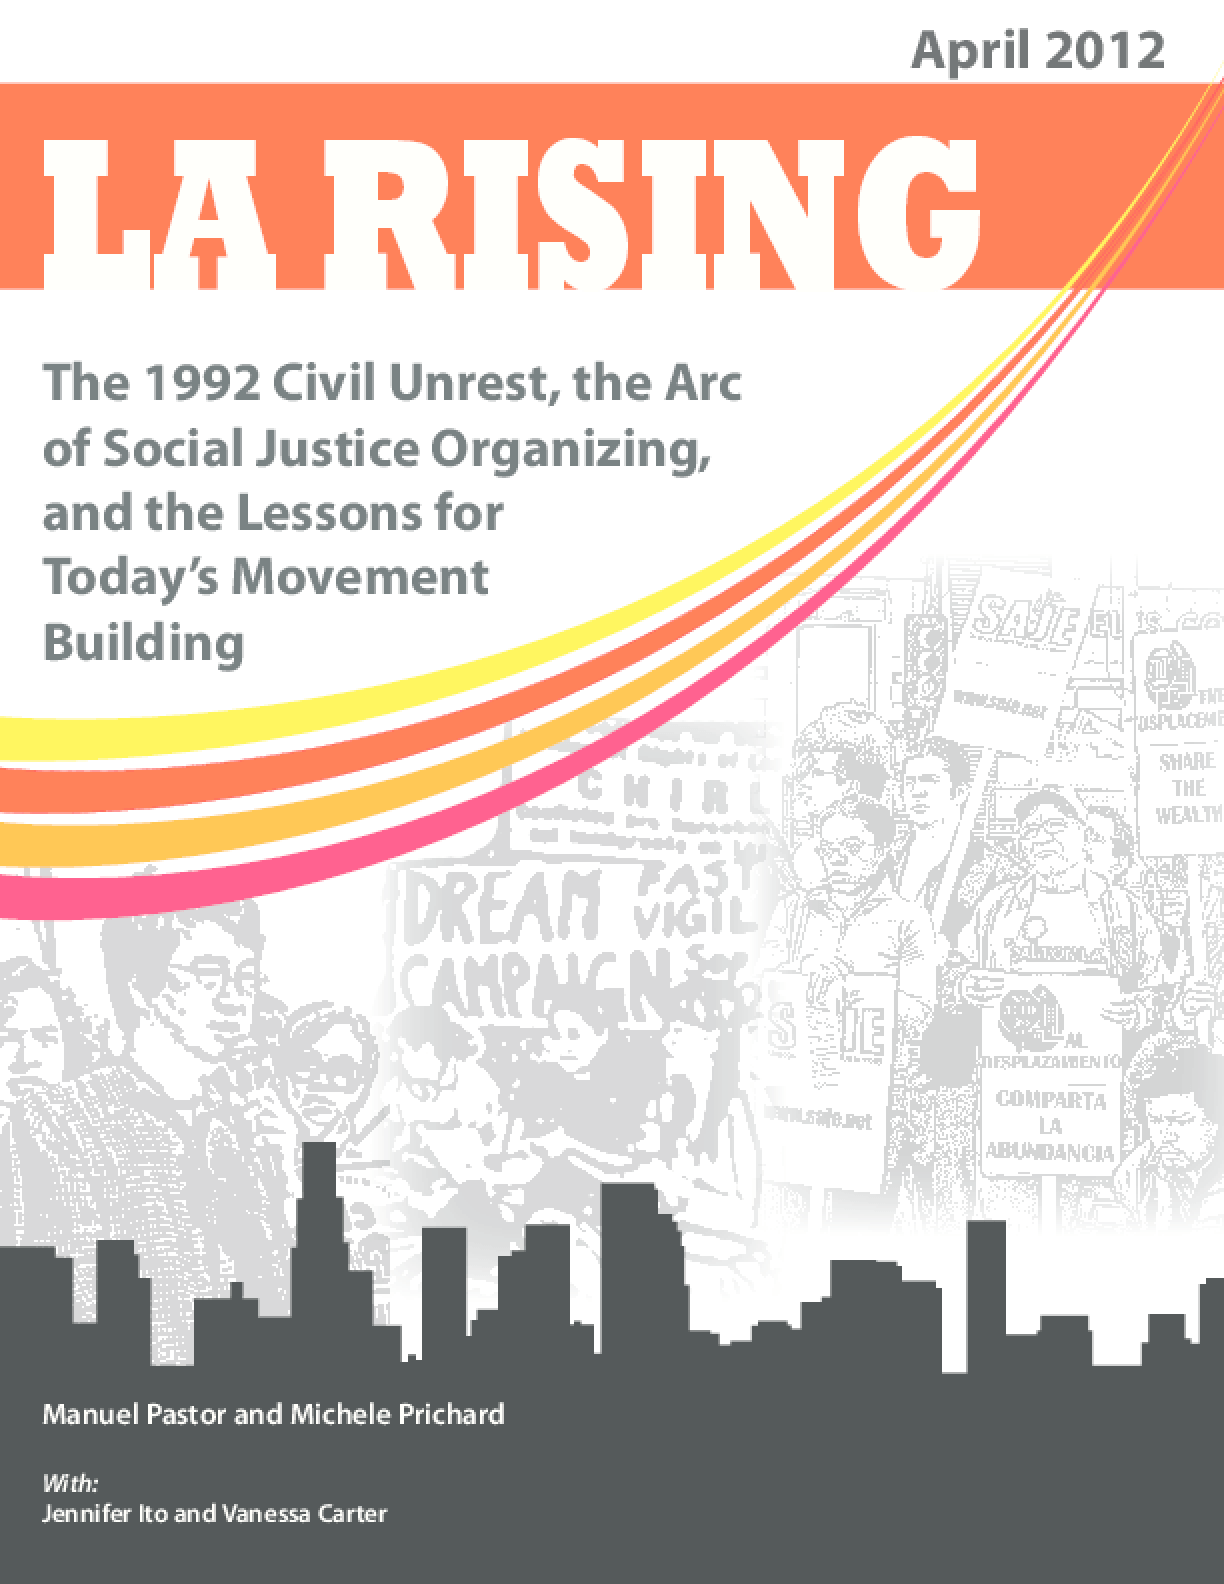 L.A. Rising: The 1992 Civic Unrest, the Arc of Social Justice Organizing, and the Lessons for Today's Movement Building